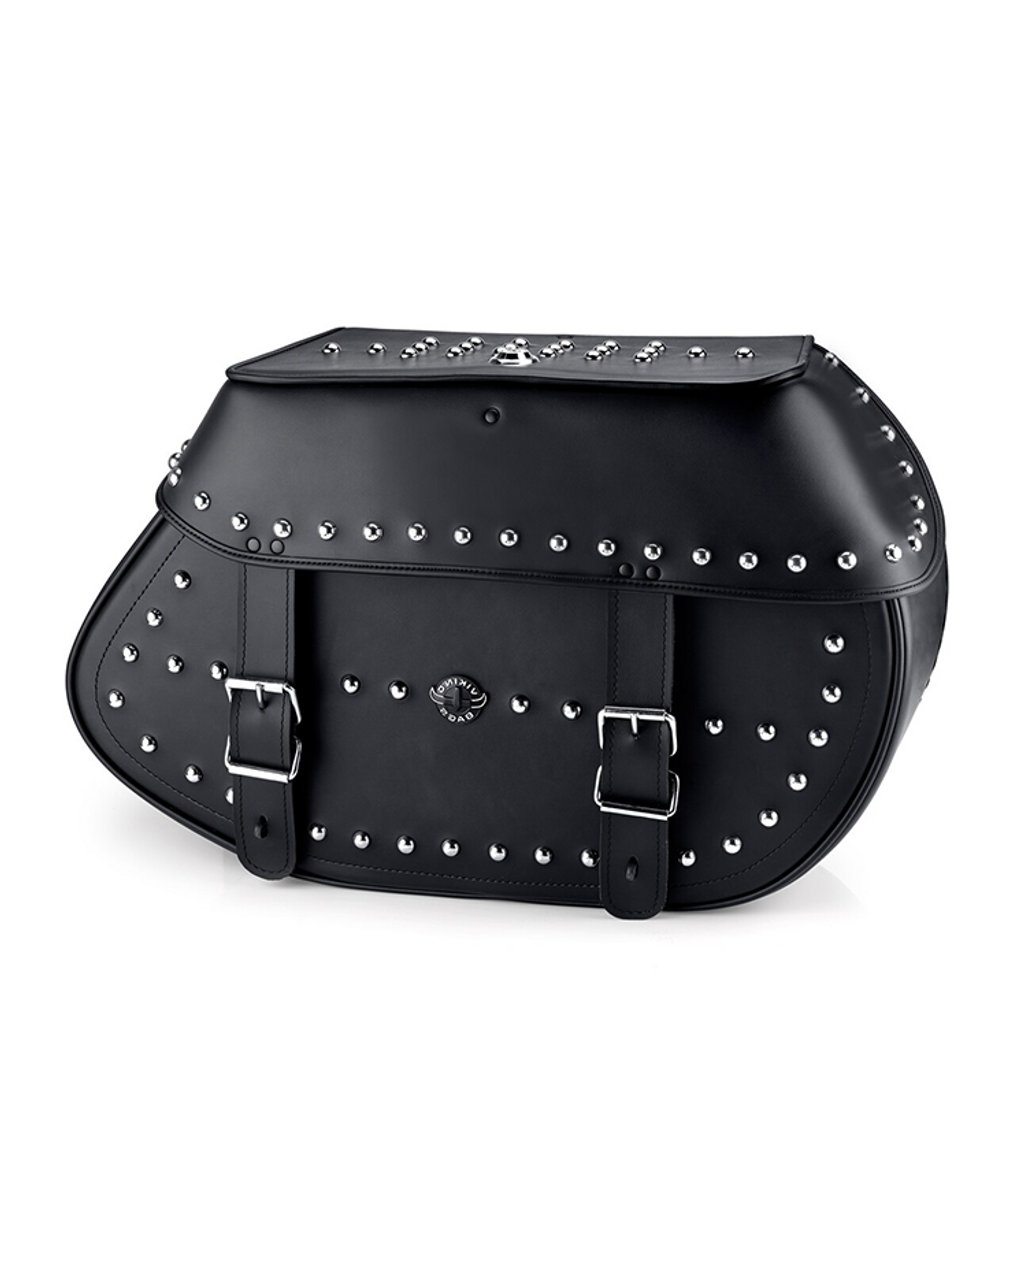 Viking Specific Studded Extra Large Saddlebags For Harley Softail Standard FXST Bag View